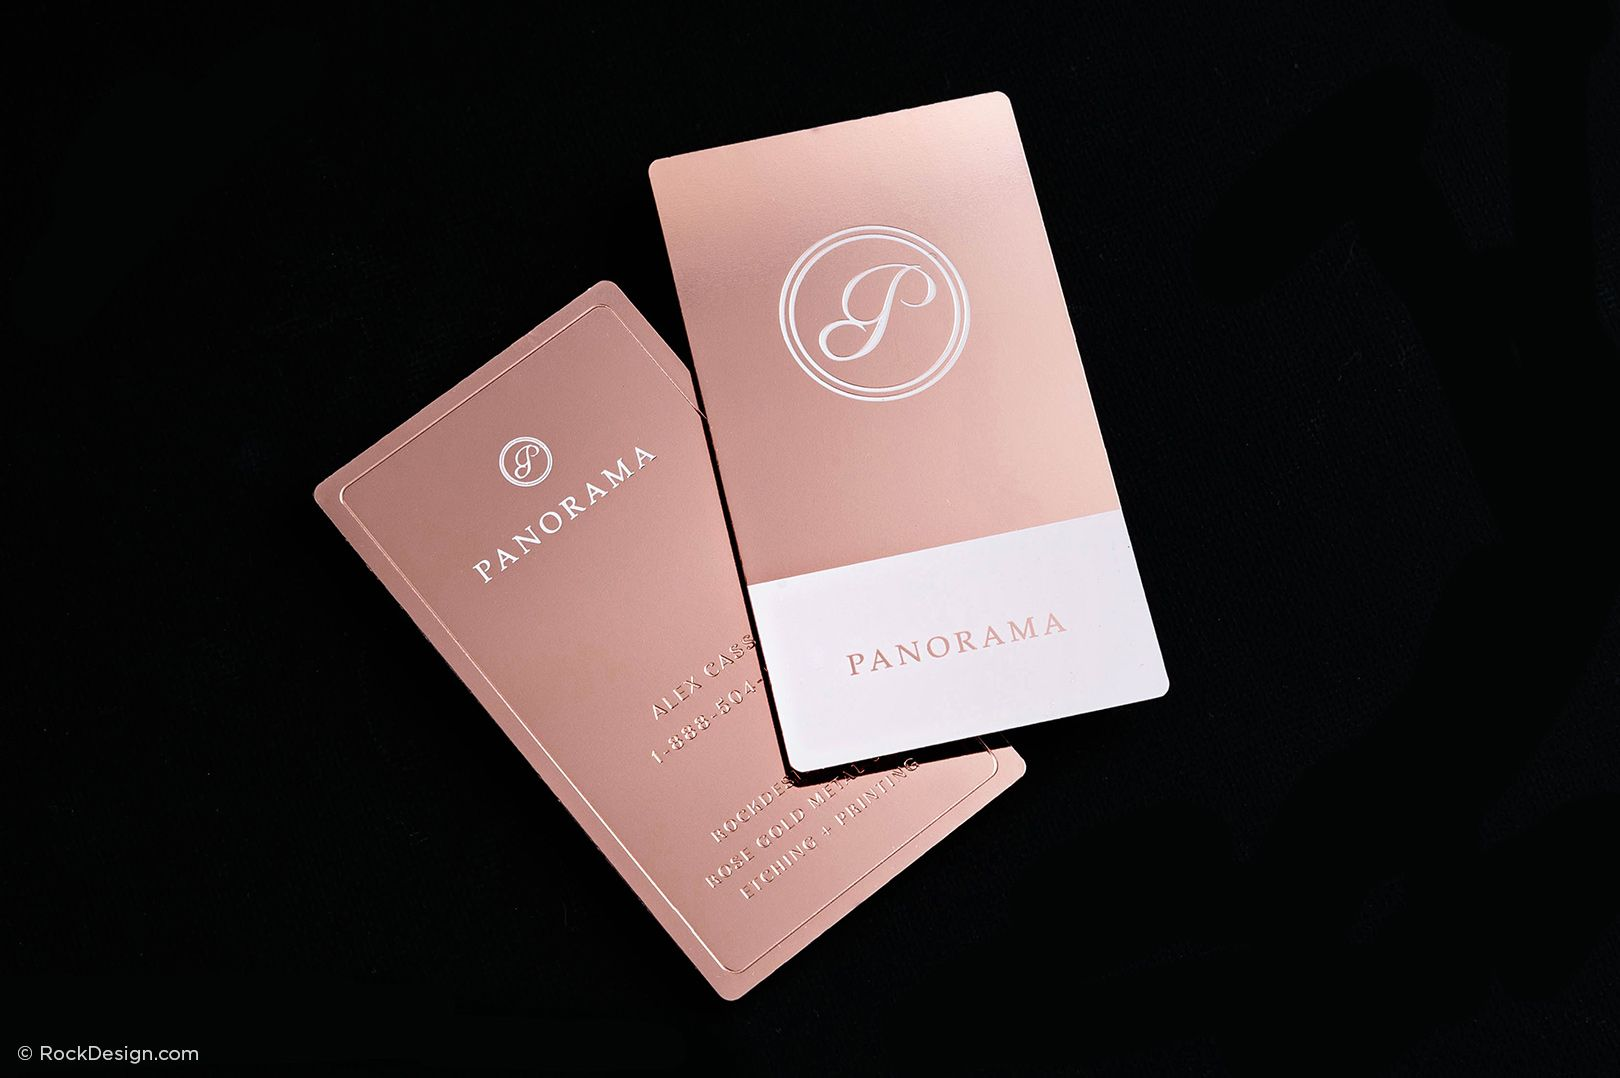 Luxury rose gold metal business card panorama rockdesign luxury luxury rose gold metal business card panorama rockdesign luxury business card printing colourmoves